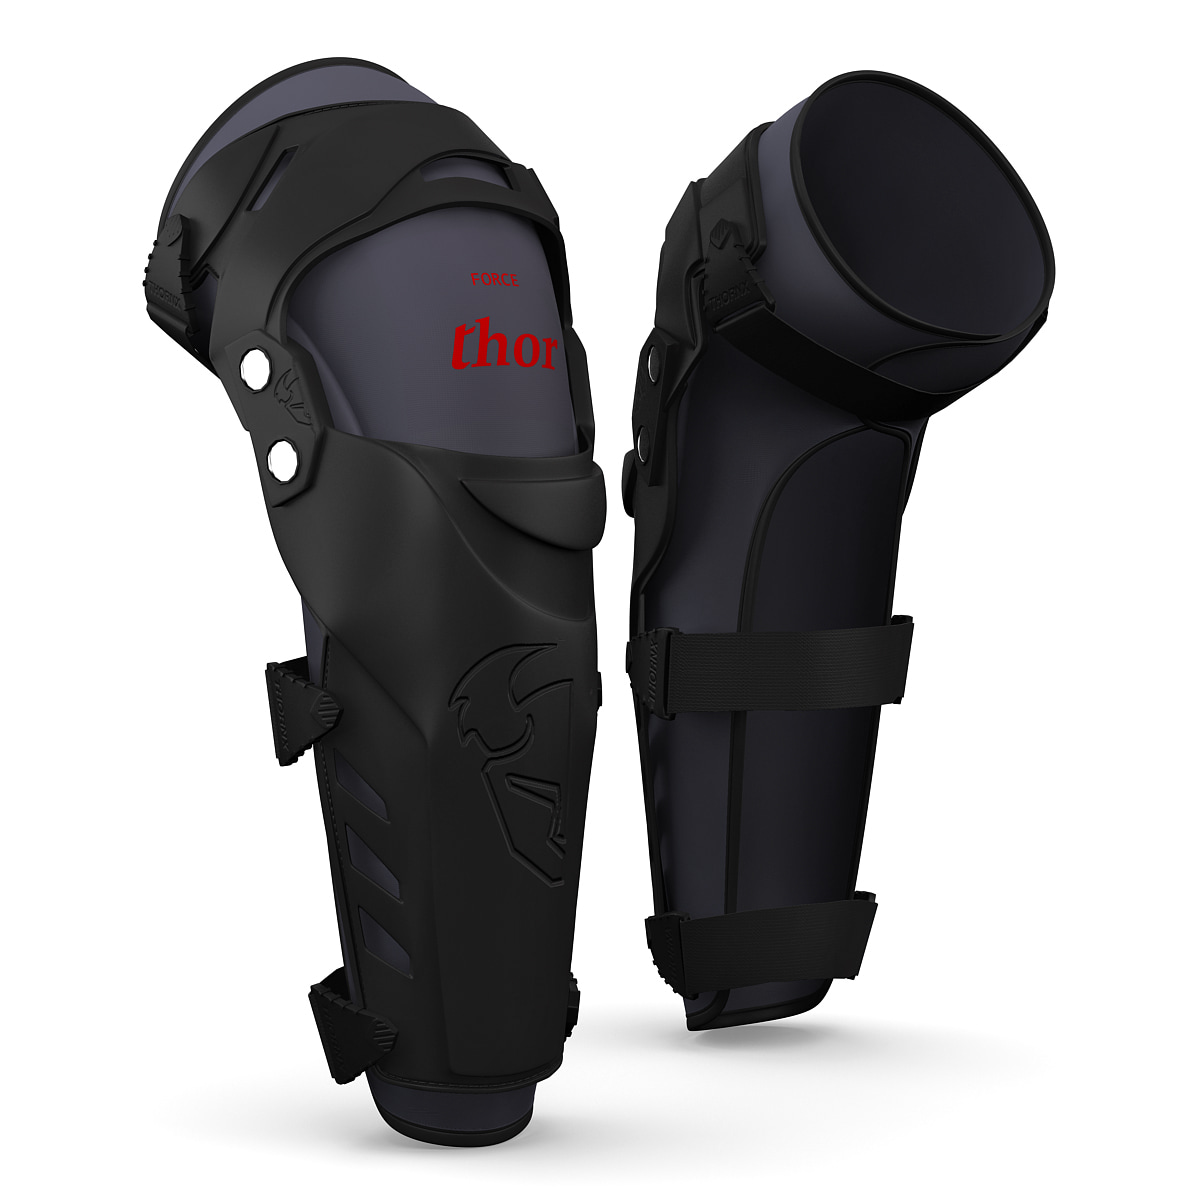 Motocross_Knee_Protection_Thor_Force_Knee_Guards_001.jpg